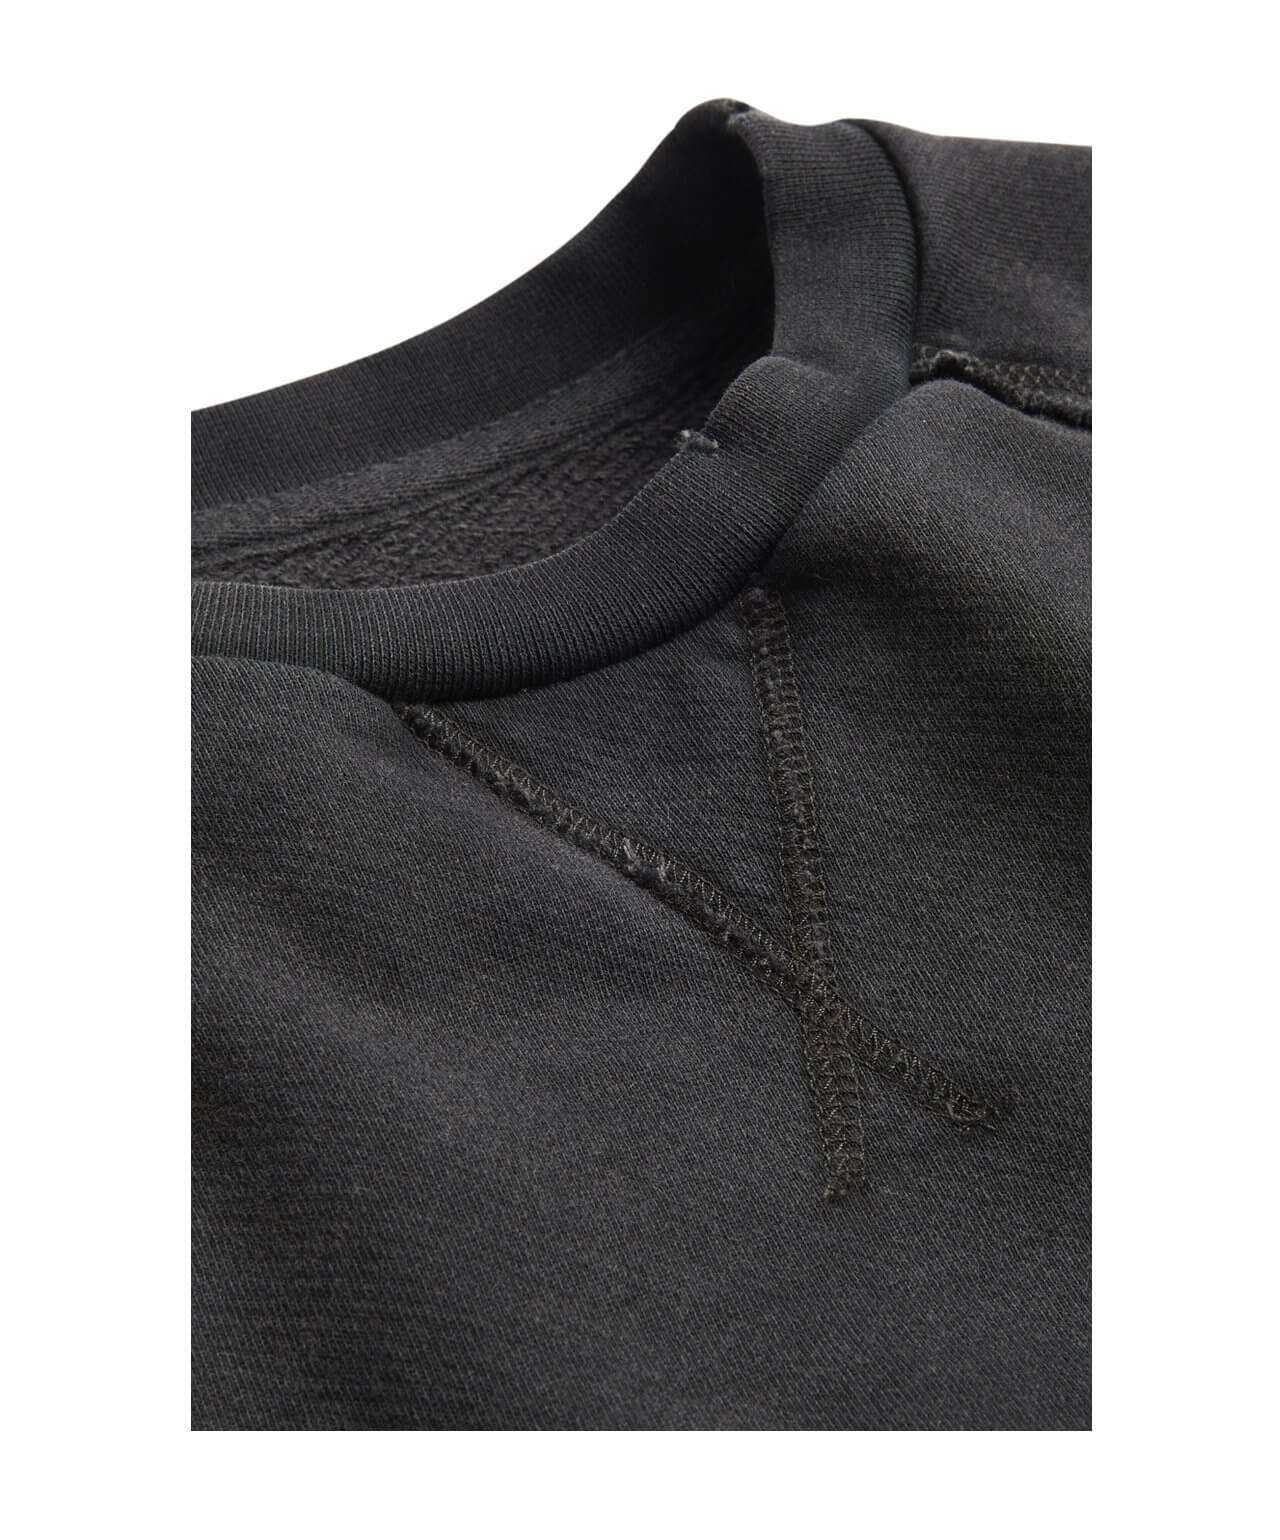 CHARCOAL CREWNECK SWEATSHIRT